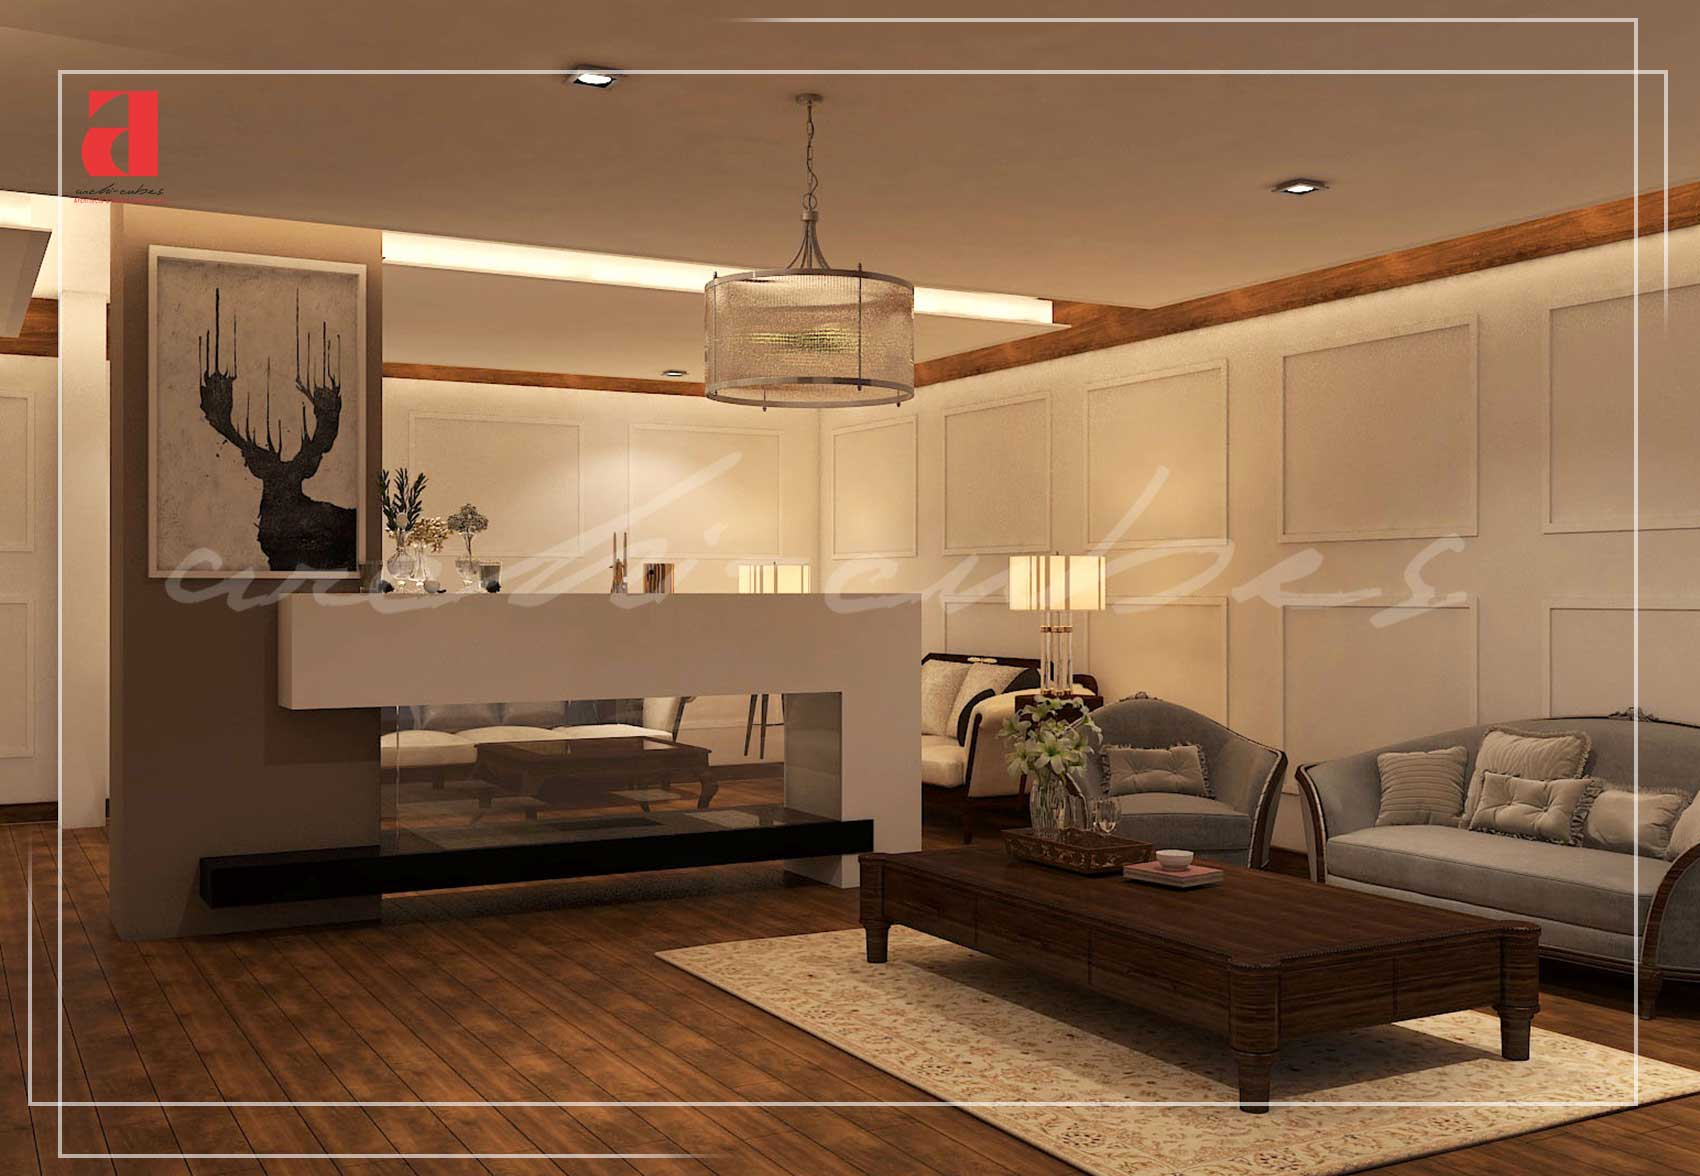 Home lounge interior design in bahria town lahore archi cubes